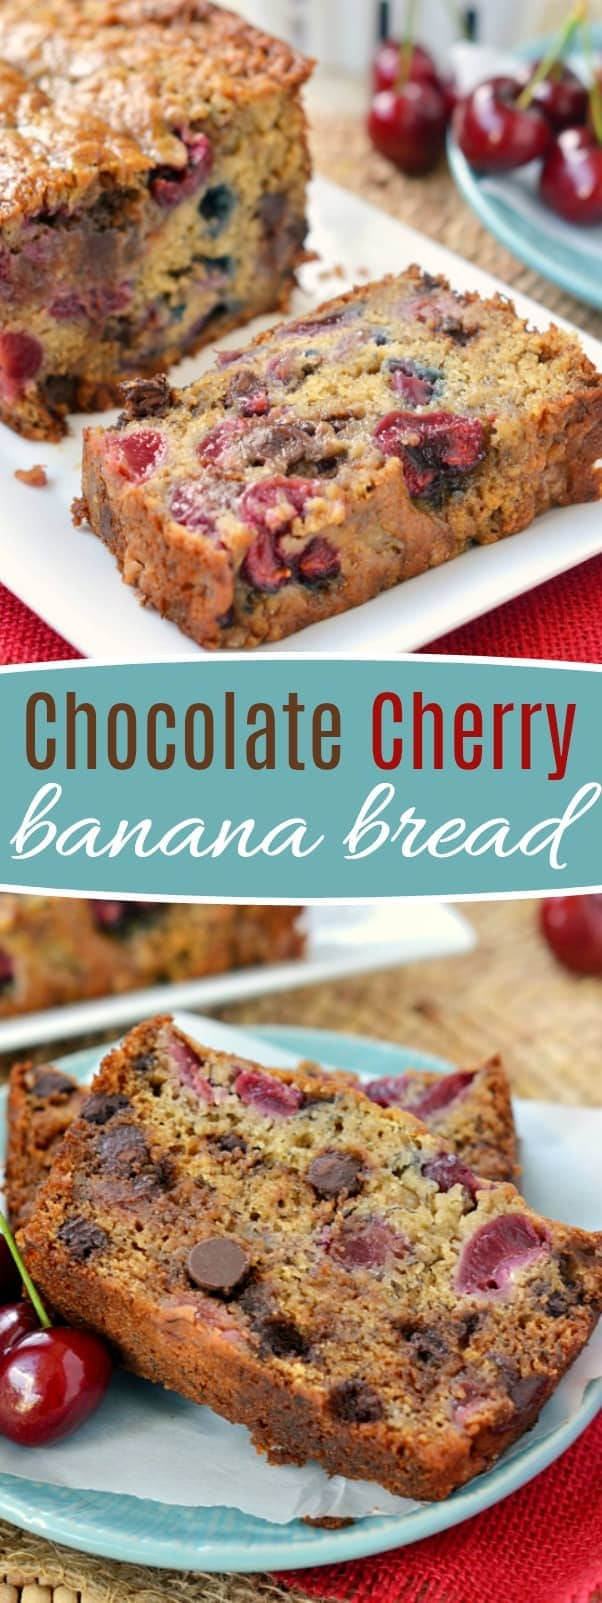 Chocolate Cherry Banana Bread! The chocolate and cherry combination is the perfect complement to this tasty banana bread. Exceptionally moist and tender, you won't be able to stop at just one slice! Prepare to be amazed! // Mom On Timeout #banana #bread #chocolate #cherry #recipe #bananabread #ripebananas #momontimeout